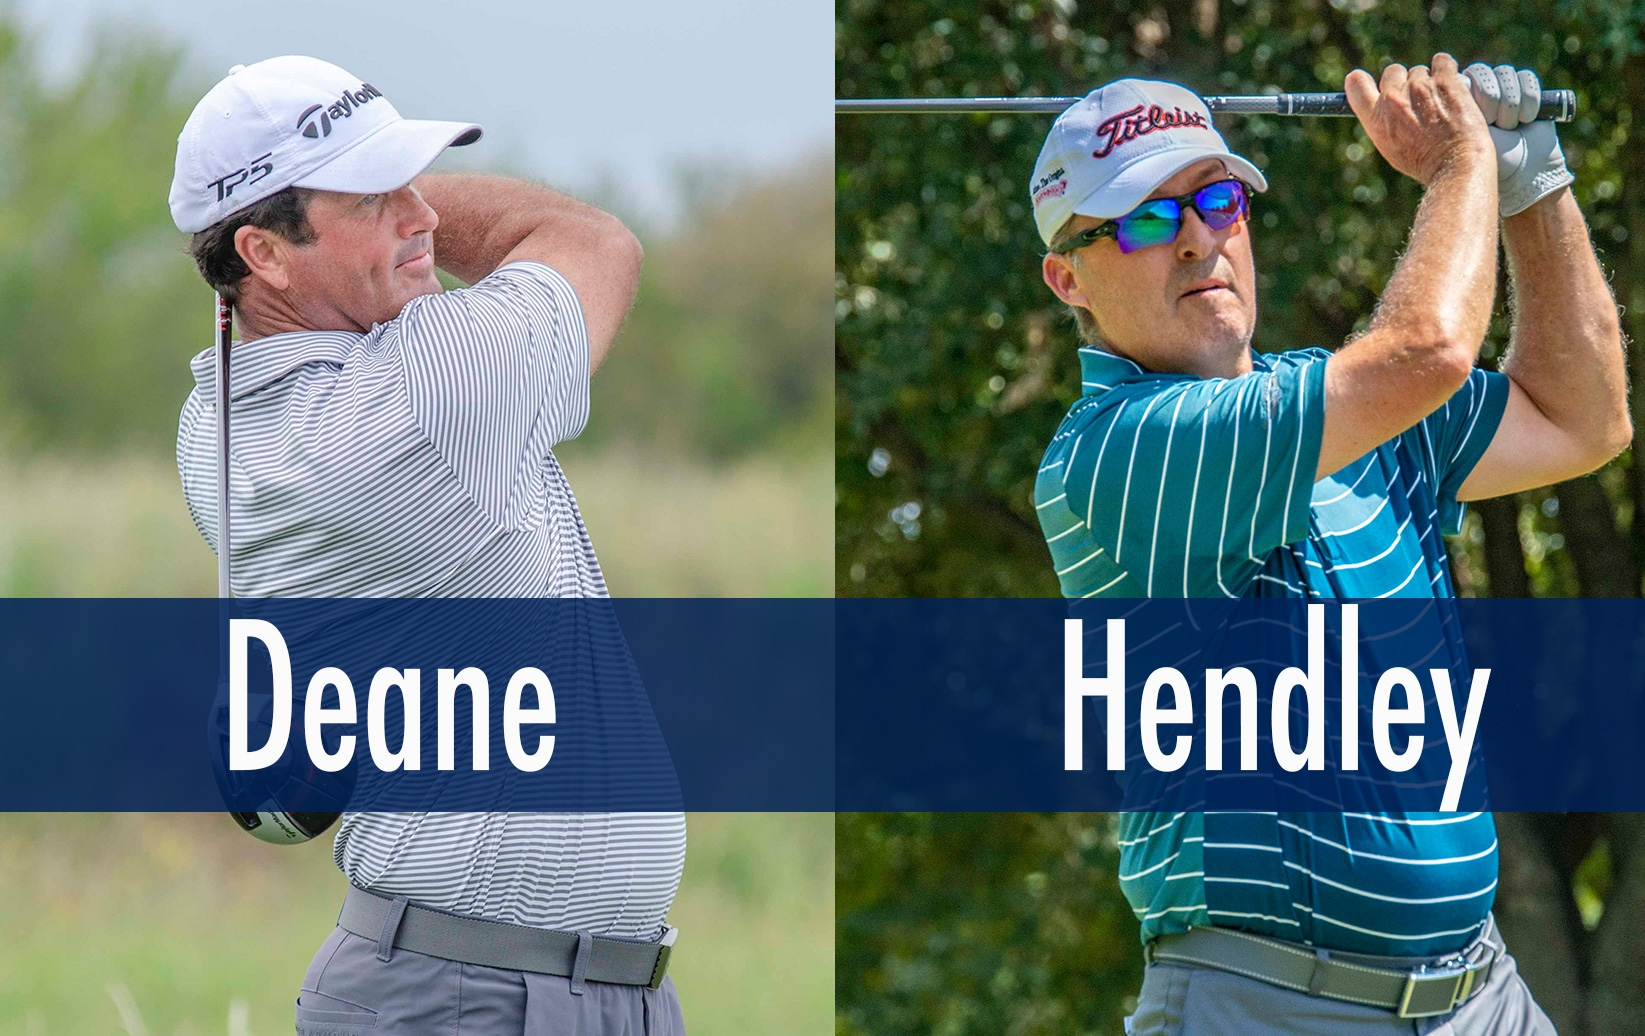 Deane, Hendley Earn Prestigious Northern Texas PGA Awards